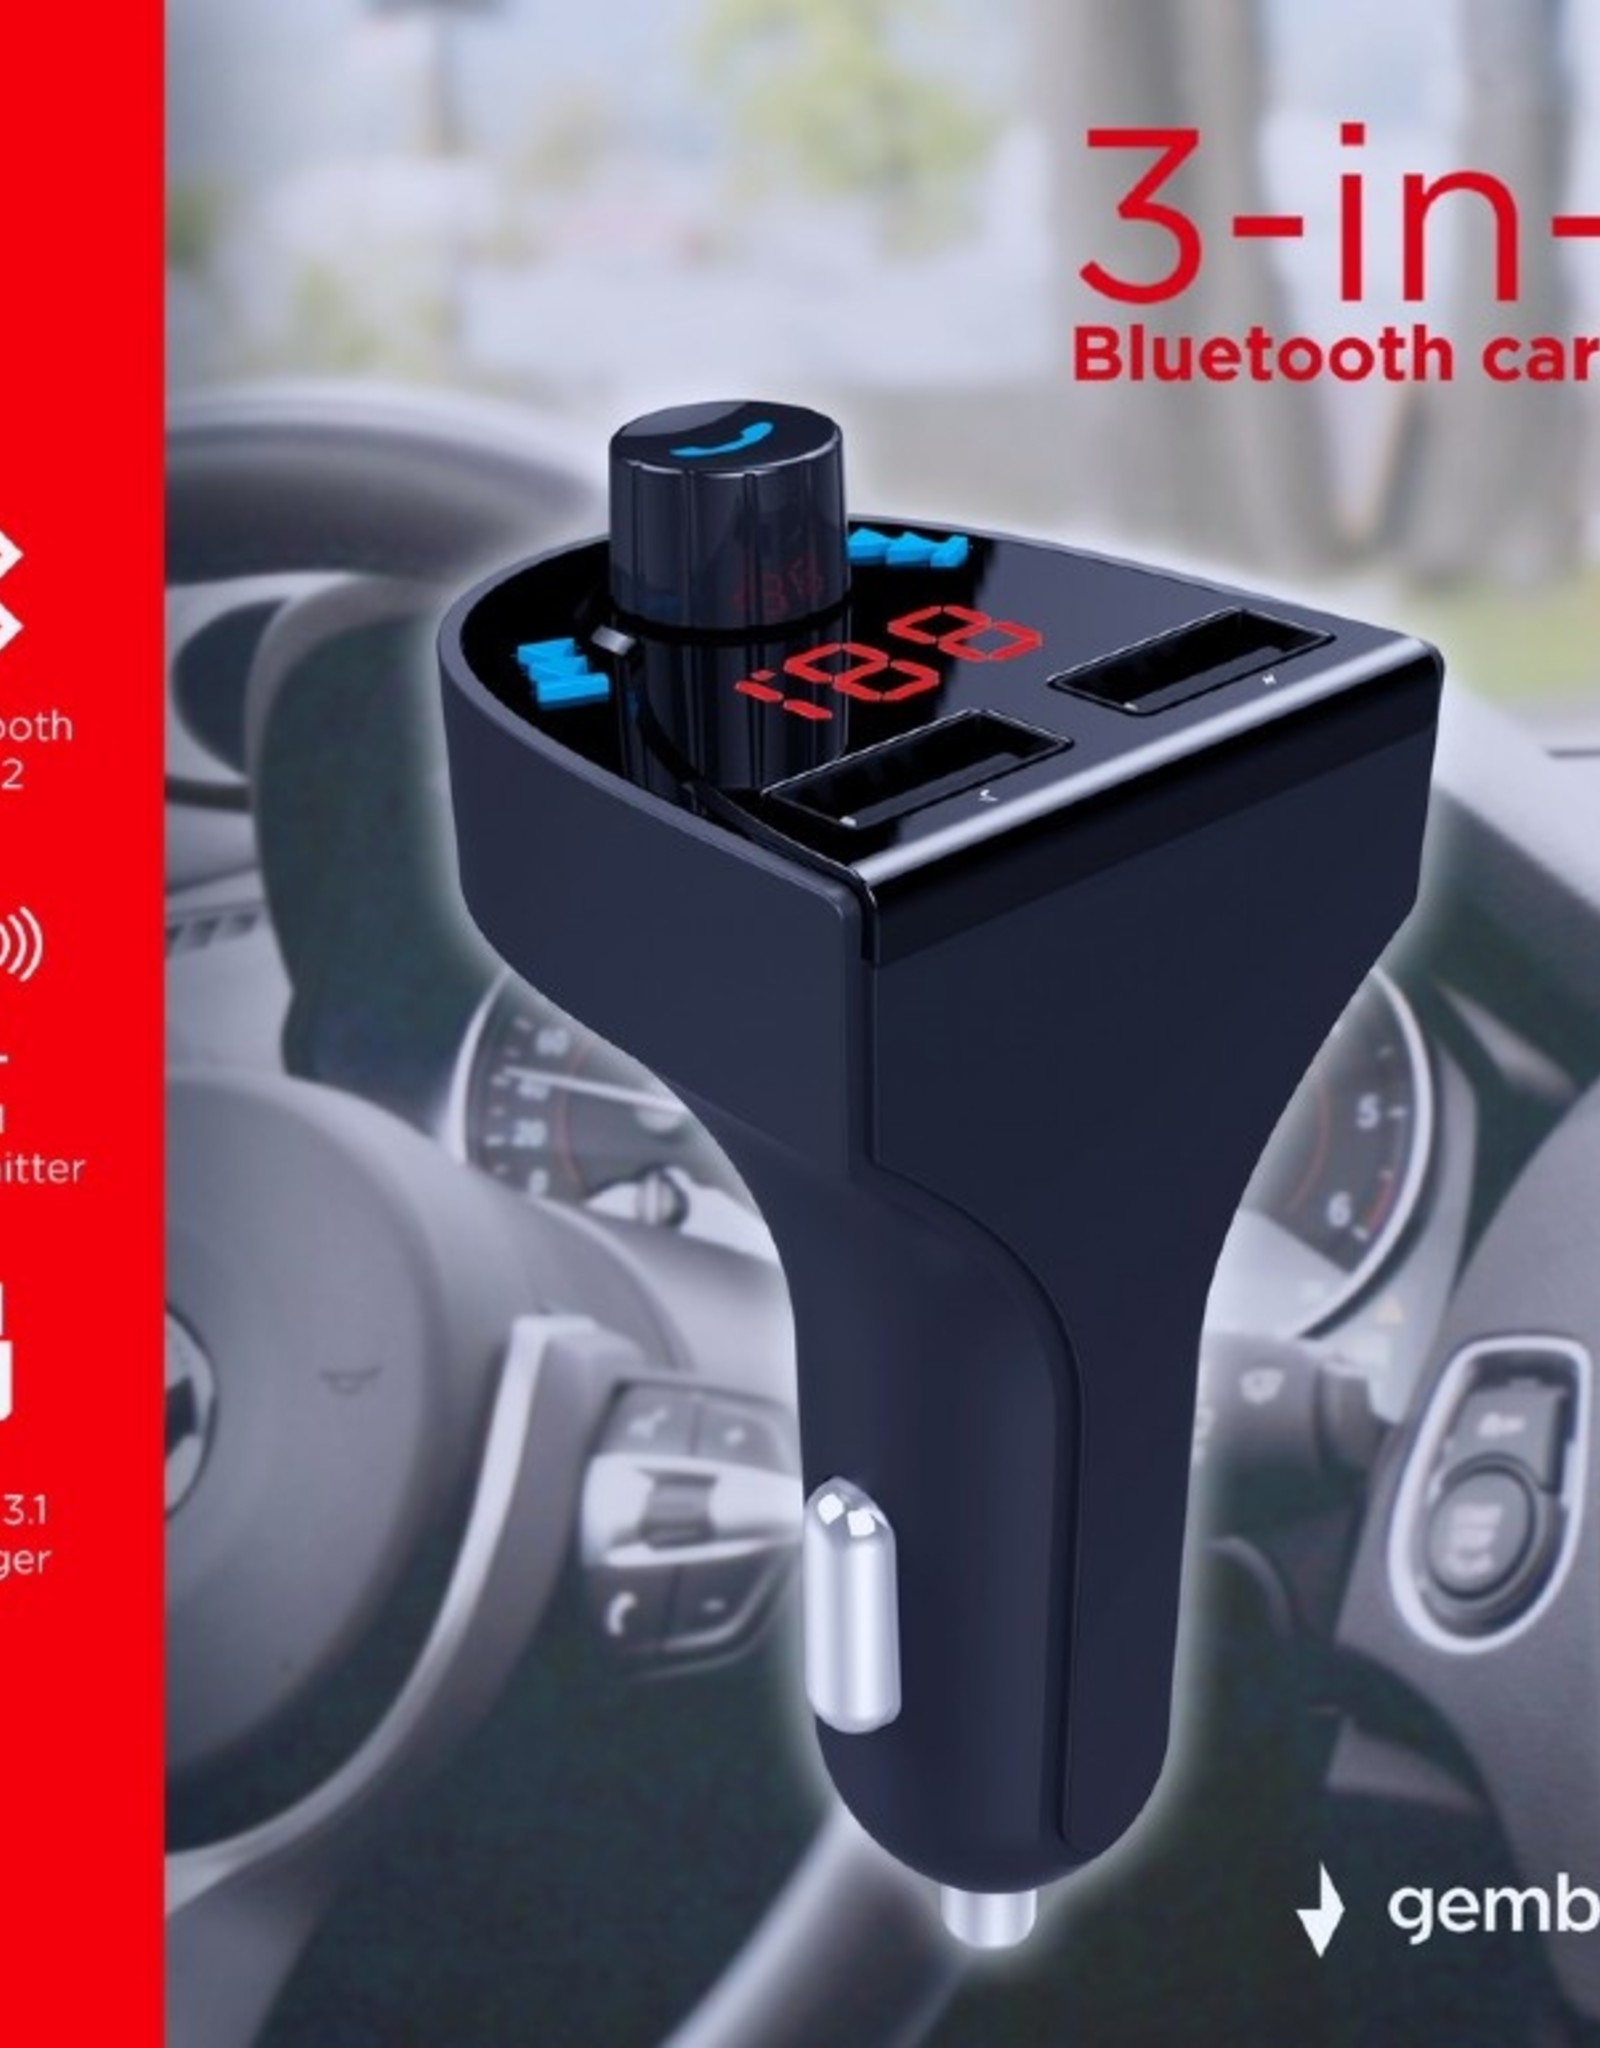 Gembird 3-in-1 Bluetooth carkit with FM-radio transmitter and USB 3.1 A charger, black